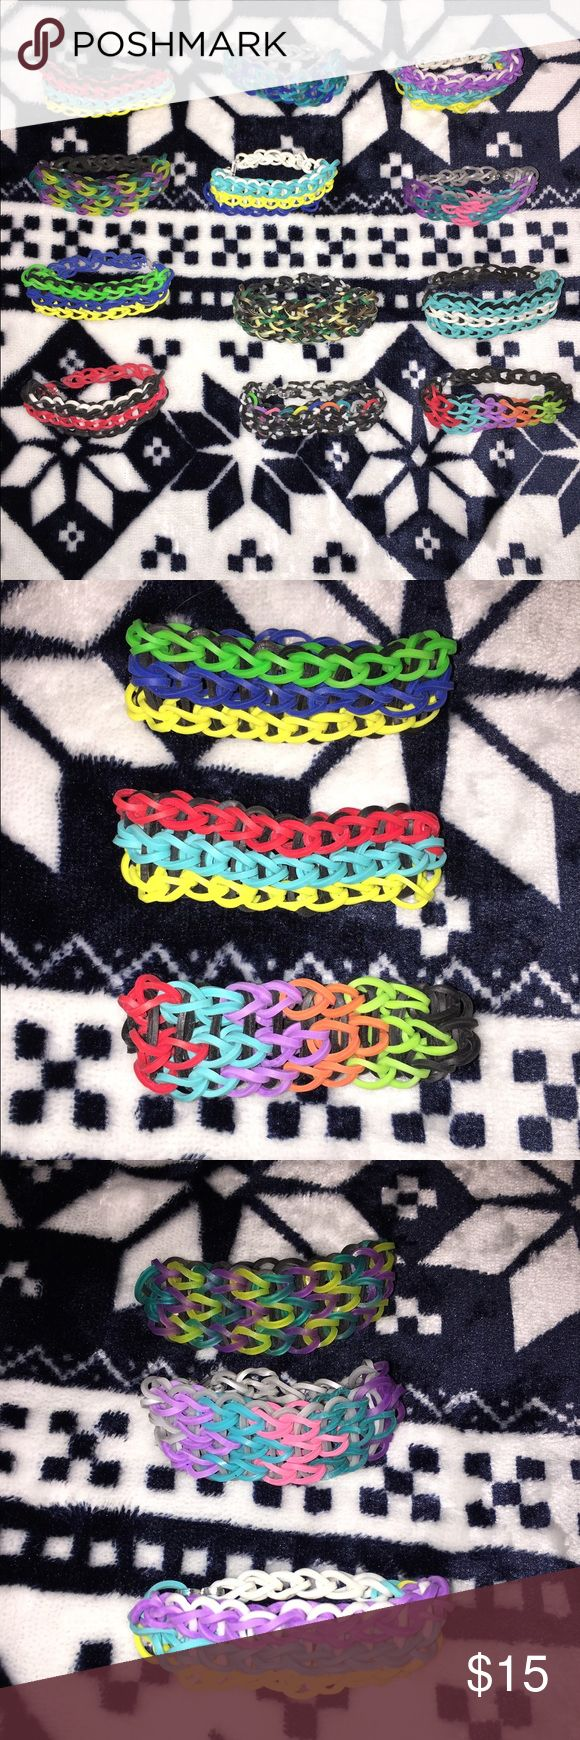 12 Multicolored TripleSingle Rubber Band Bracelets Homemade, no flaws! All are relatively the same size, but can be made bigger if needed! Fits about a 6inch wrist! Jewelry Bracelets